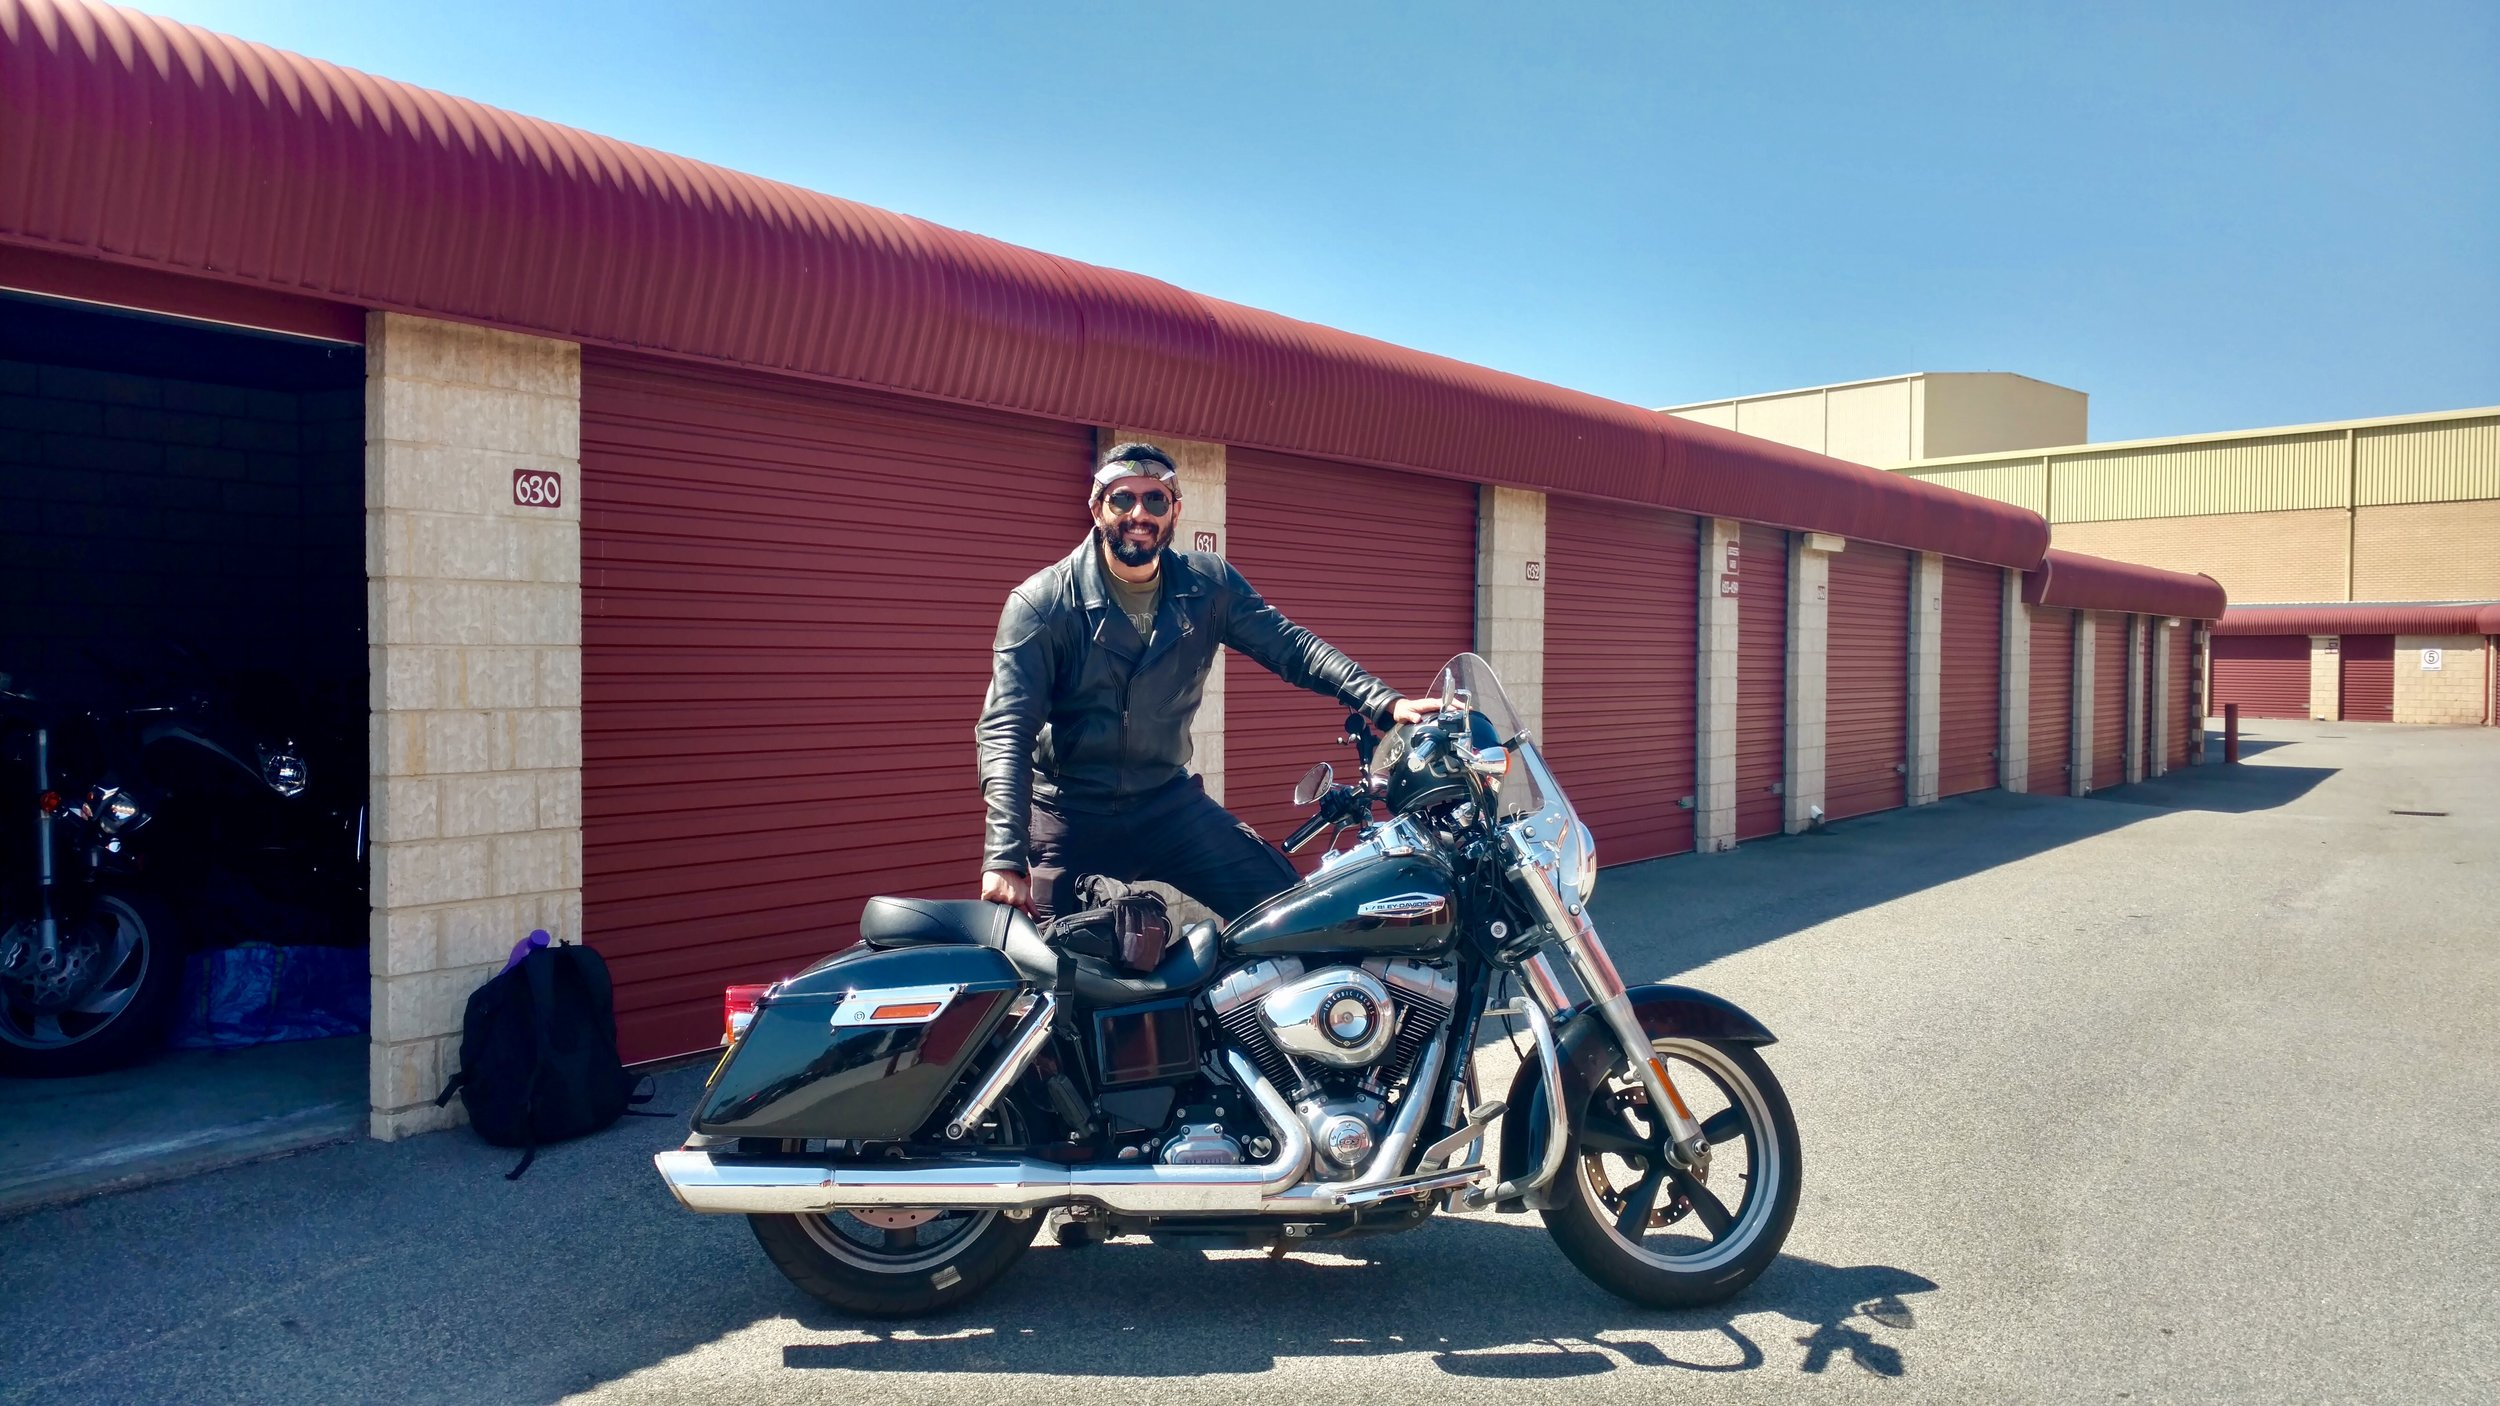 That's Suhas with his Harley (drool drool!!)